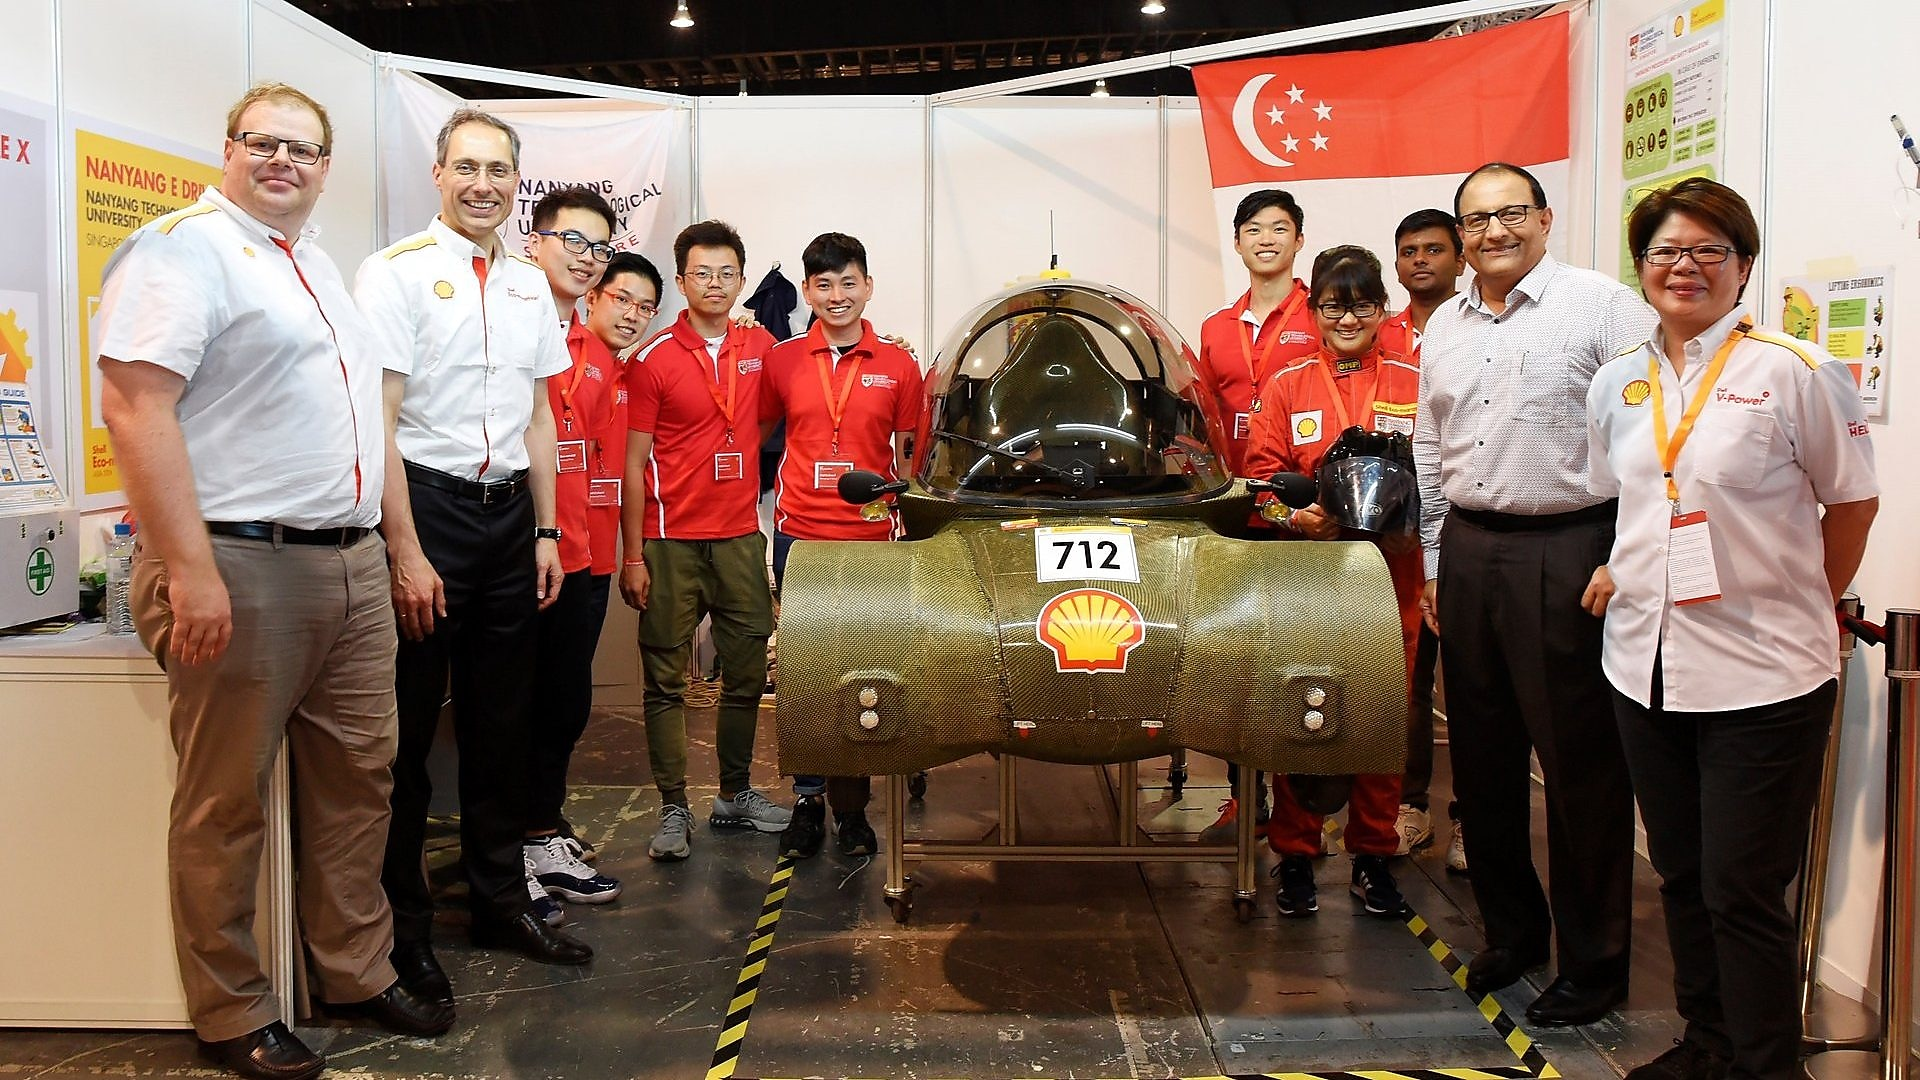 (From L-R) Mr Norman Koch (General Manager of Shell Eco-marathon), Mr Yuri Sebregts (Chief Technology Officer and Chief Scientist, Shell Global), Minister S Iswaran and Ms Goh Swee Chen (Chairman, Shell Singapore), with the Nanyang E Drive team from Nanyang Technological University